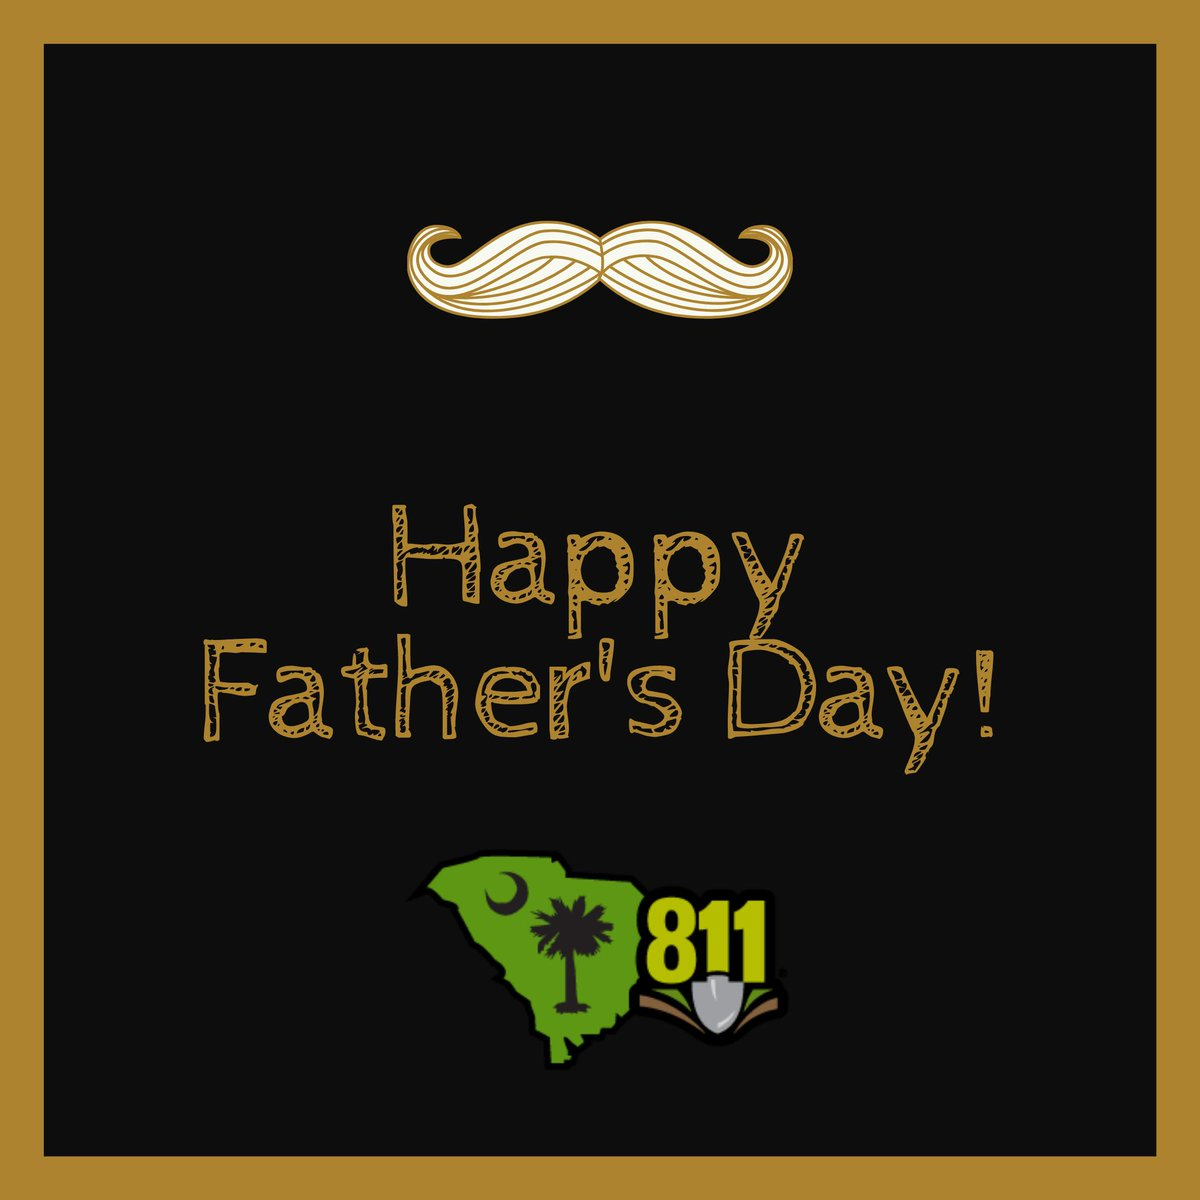 Happy Father's Day from the SC811 family.